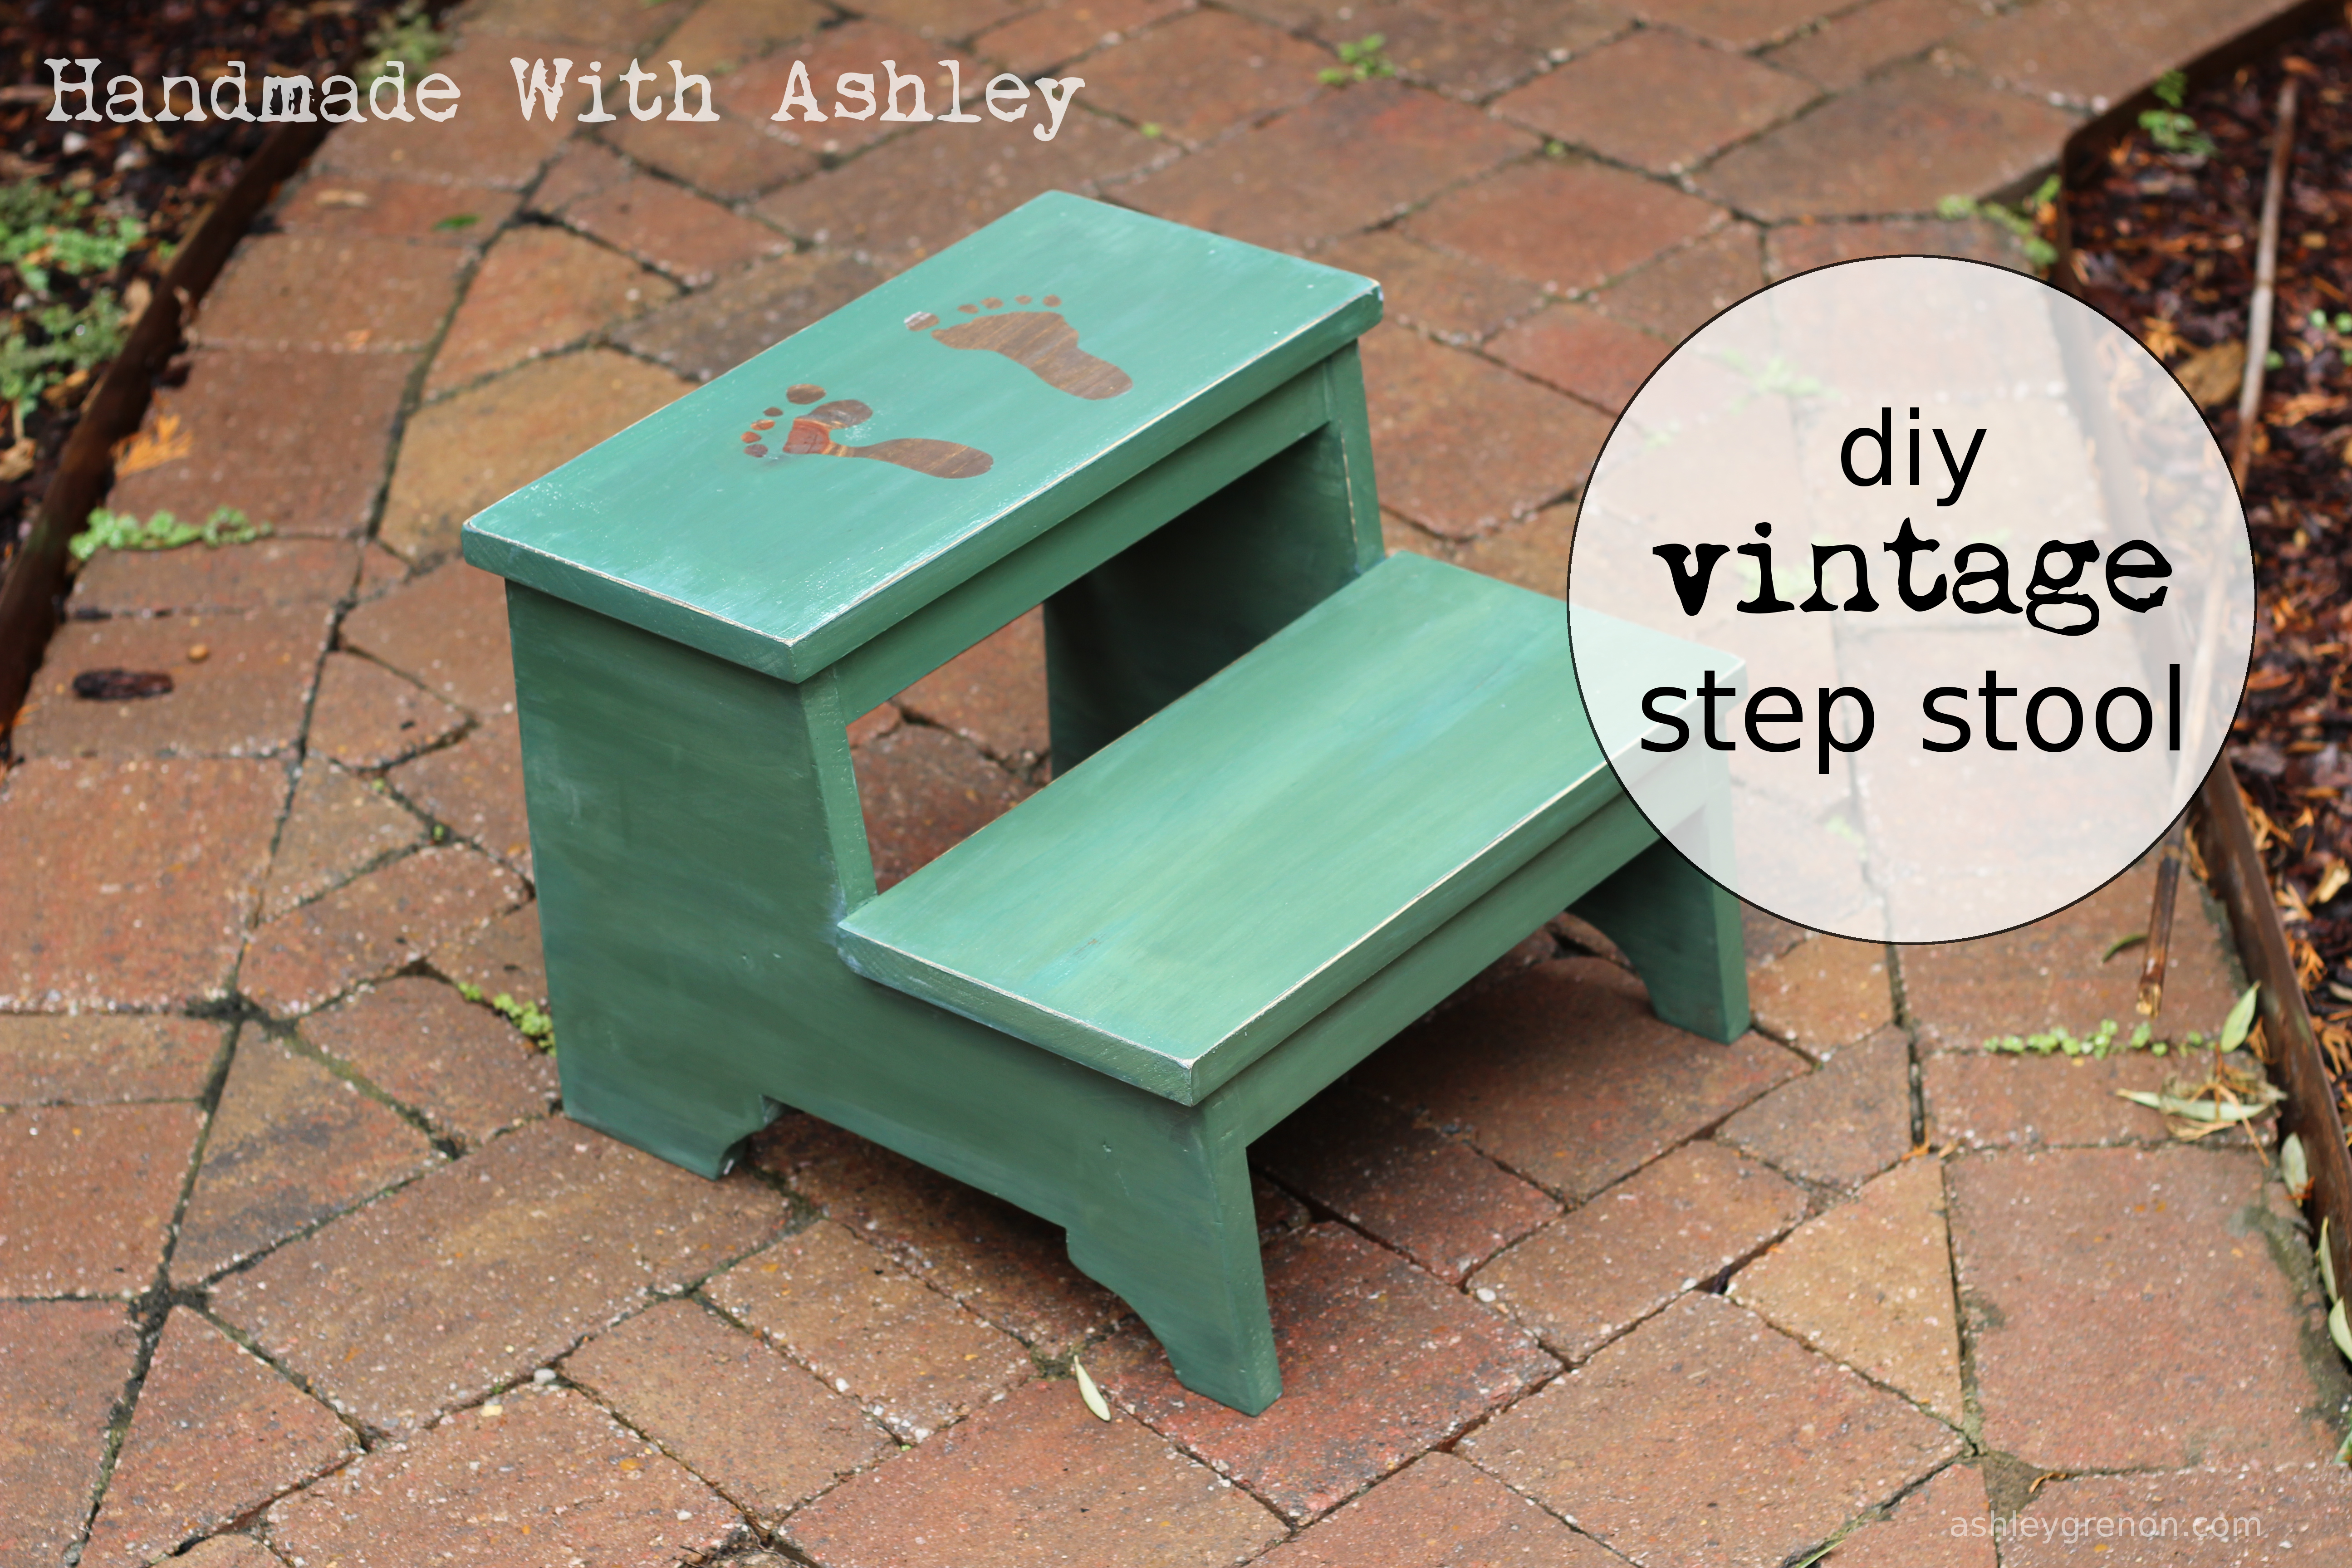 Stupendous Diy Vintage Step Stool Ana White Gamerscity Chair Design For Home Gamerscityorg